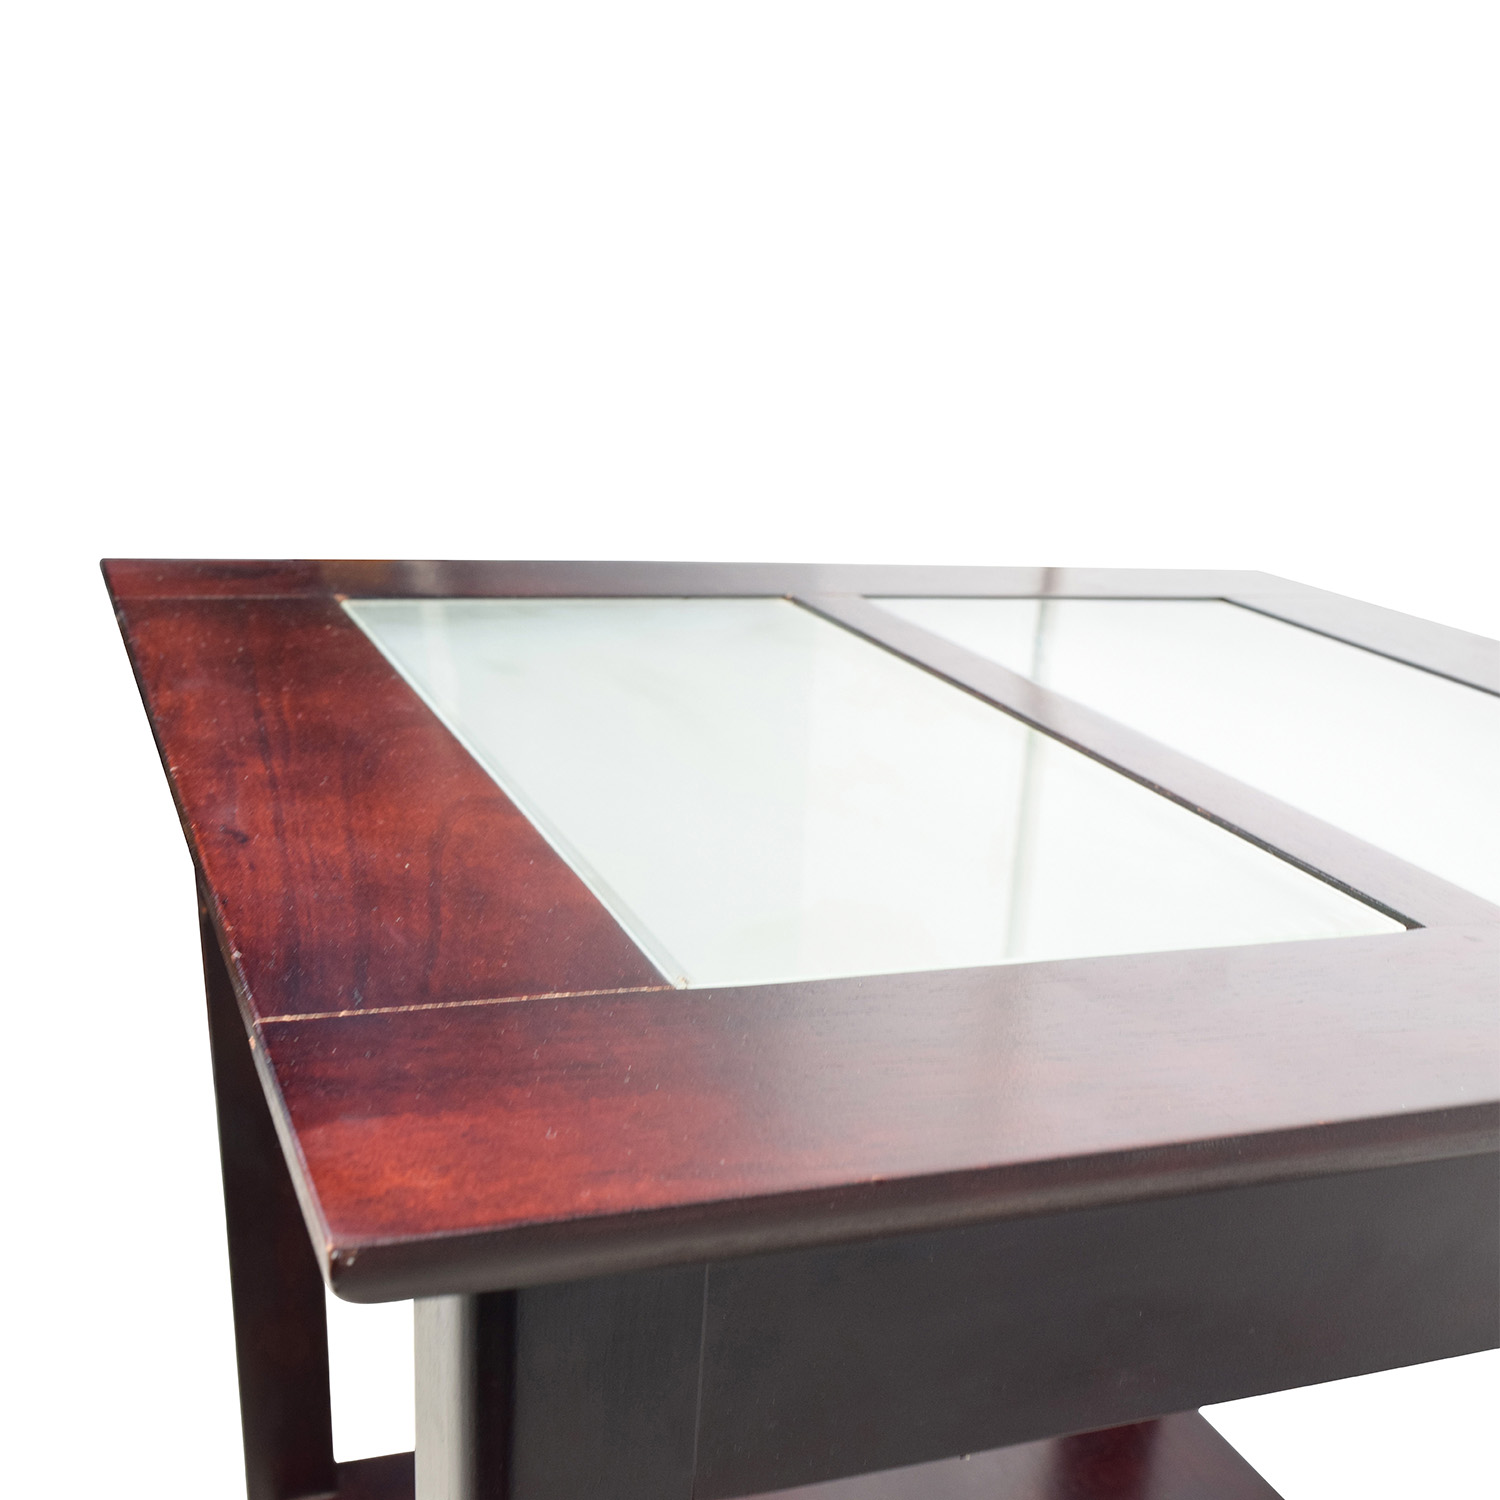 85% OFF Tar Tar Glass and Wood Coffee Table Tables